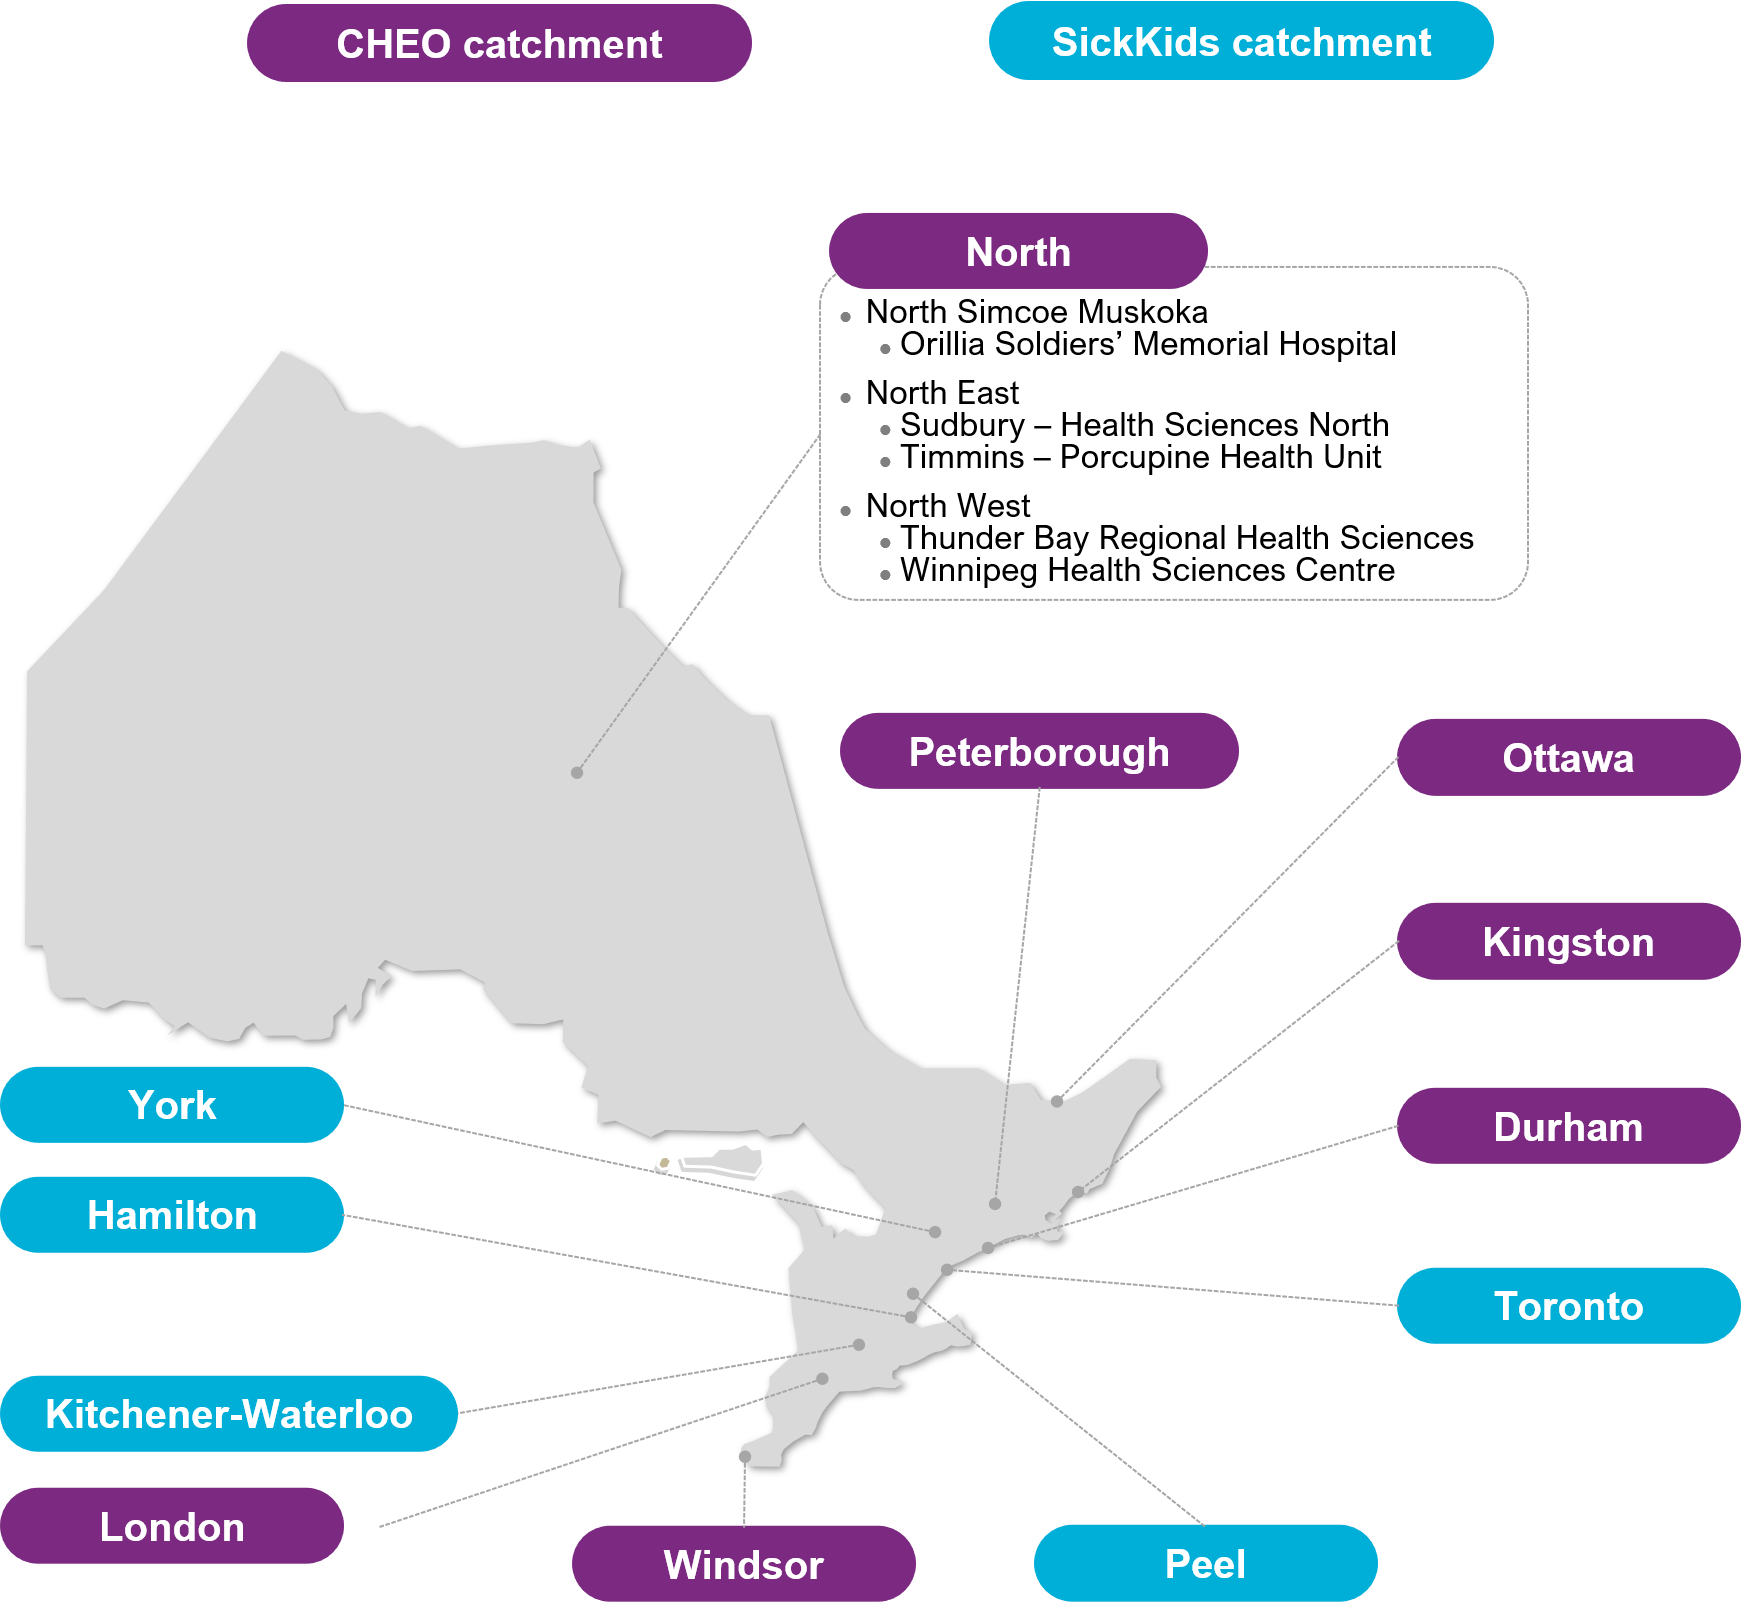 A map of Ontario depicting the GSO catchment areas. Genetics sites located in the Kitchener-Waterloo, Hamilton, Peel, Toronto, or York region should send their patient specimens to SickKids. Genetics sites located in Durham, Kingston, London, Ottawa, Peterborough, Windsor, or in Northern Ontario should send their patient specimens to CHEO